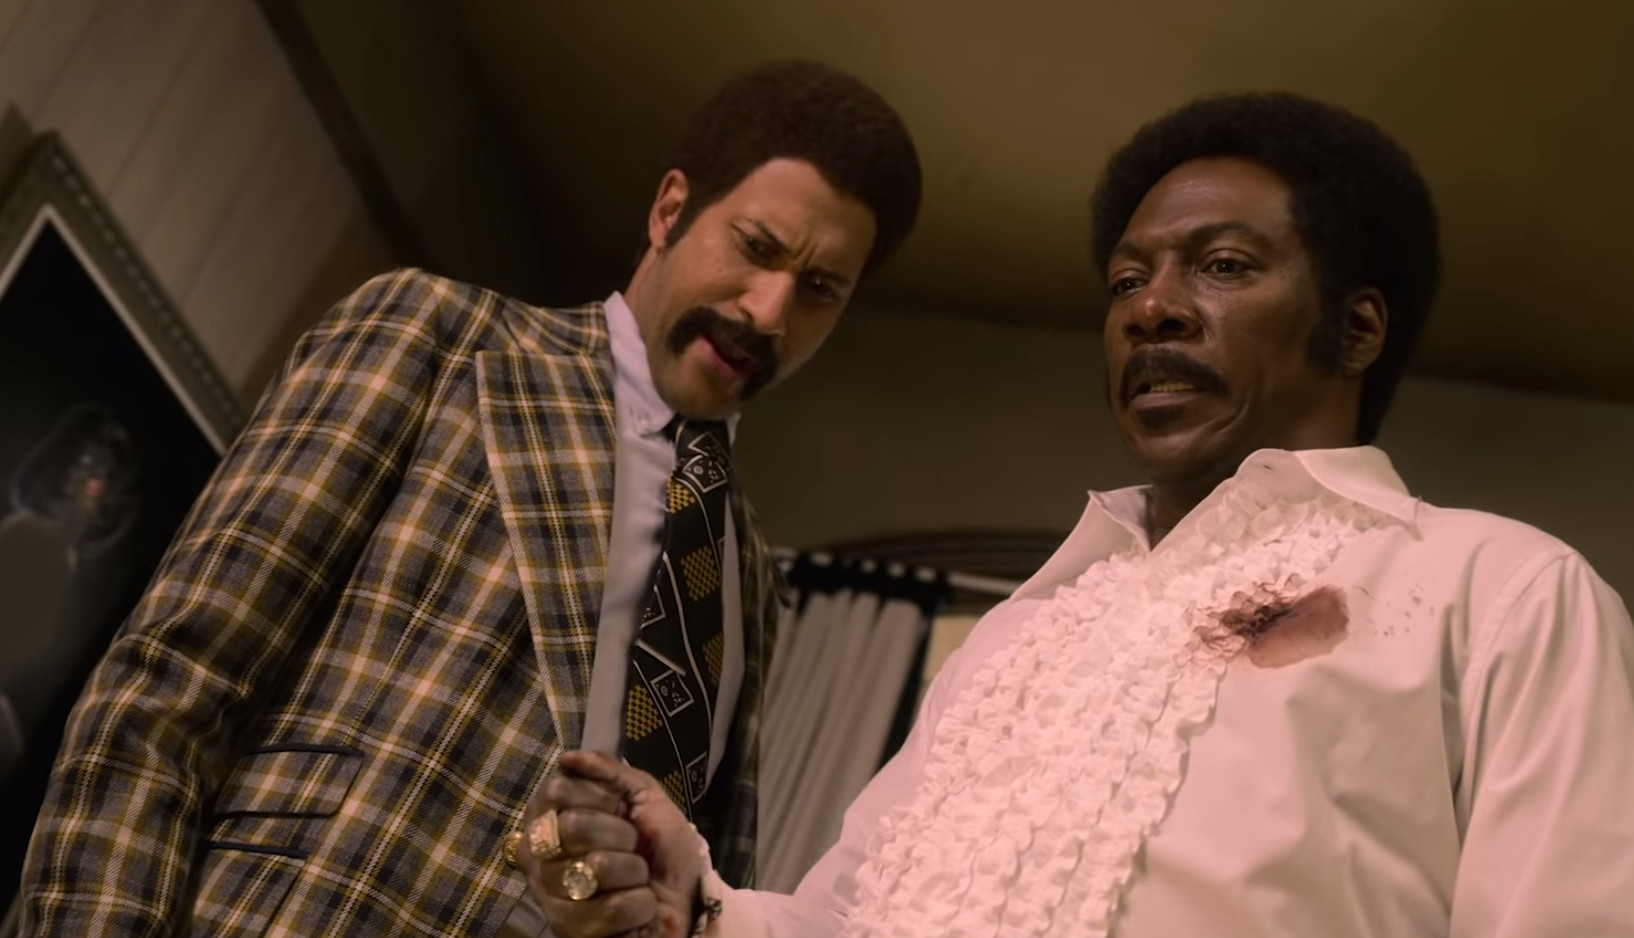 Eddie Murphy Is in Top Form in Trailer for Rudy Ray Moore Biopic 'Dolemite Is My Name'